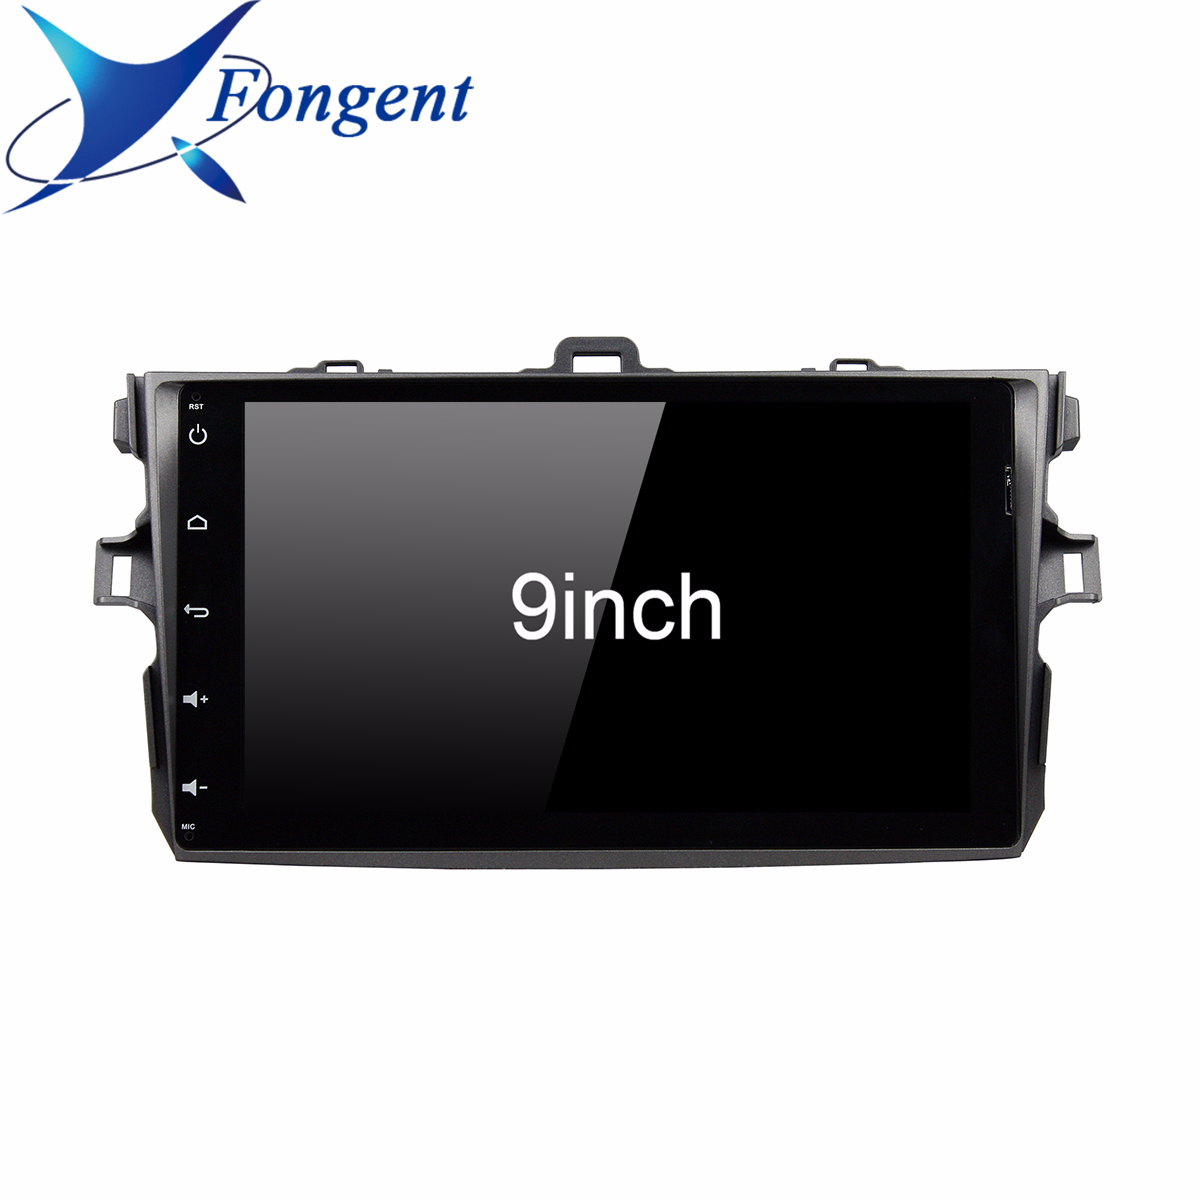 Für Toyota Corolla E140/150 2008 2009 2010 2011 <font><b>2012</b></font> 2013 Auto Android 9.0 Radio Multimedia Player Stereo GPS Navigation <font><b>2</b></font> <font><b>din</b></font> PC image